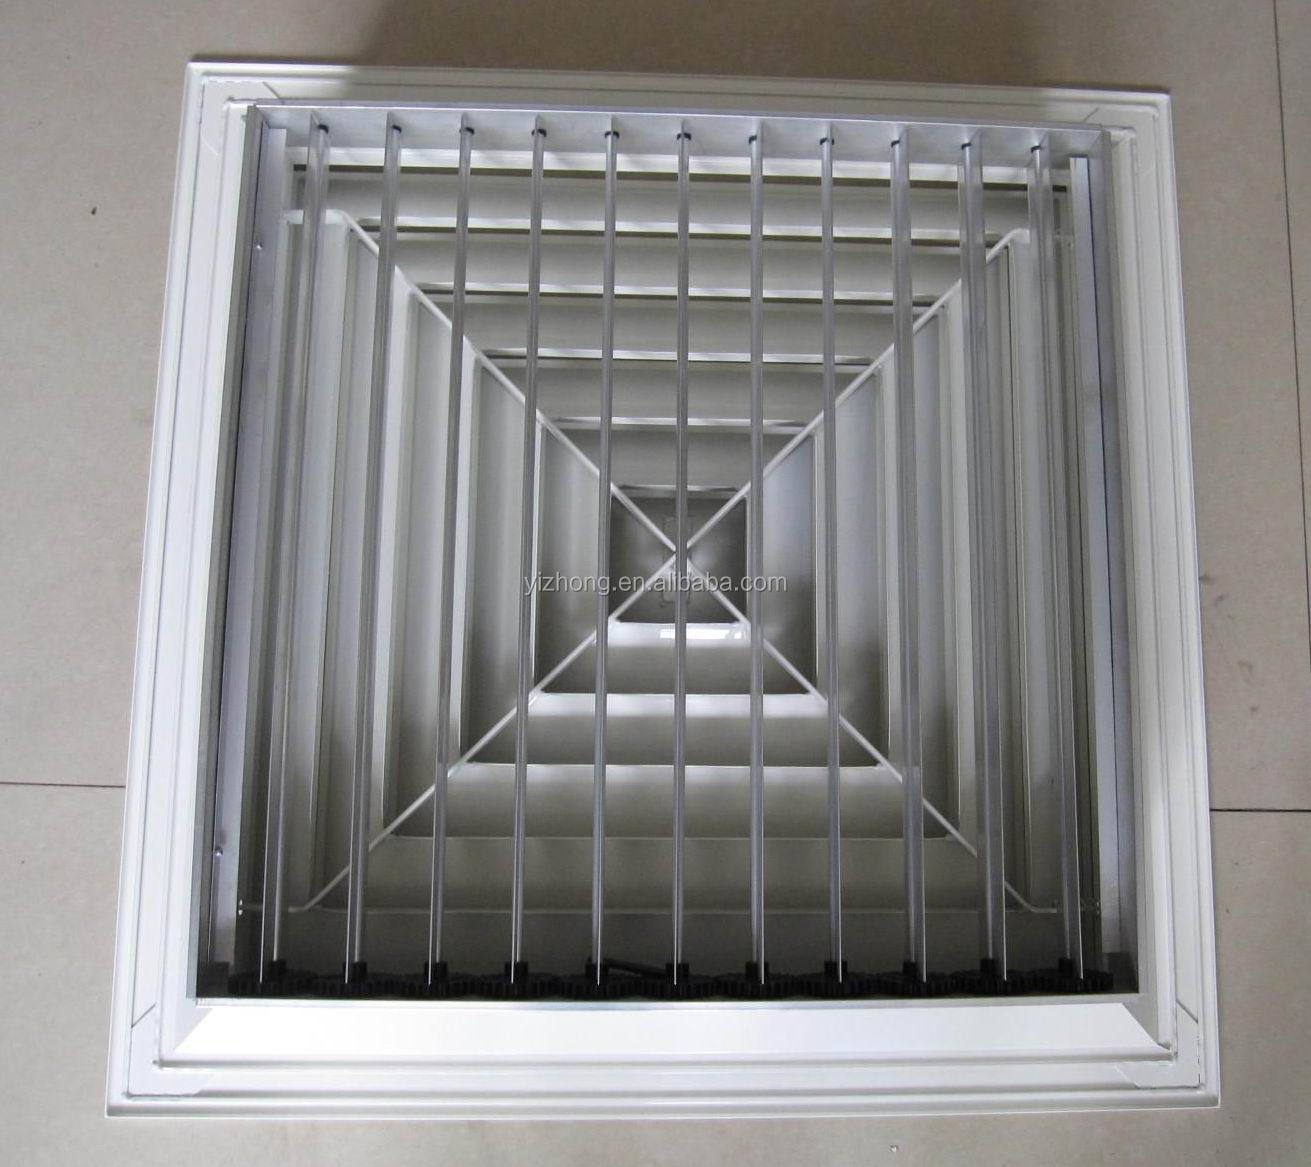 Ceiling Air Diffuser With Adjustable Damper Buy Ceiling Diffuser  #594F41